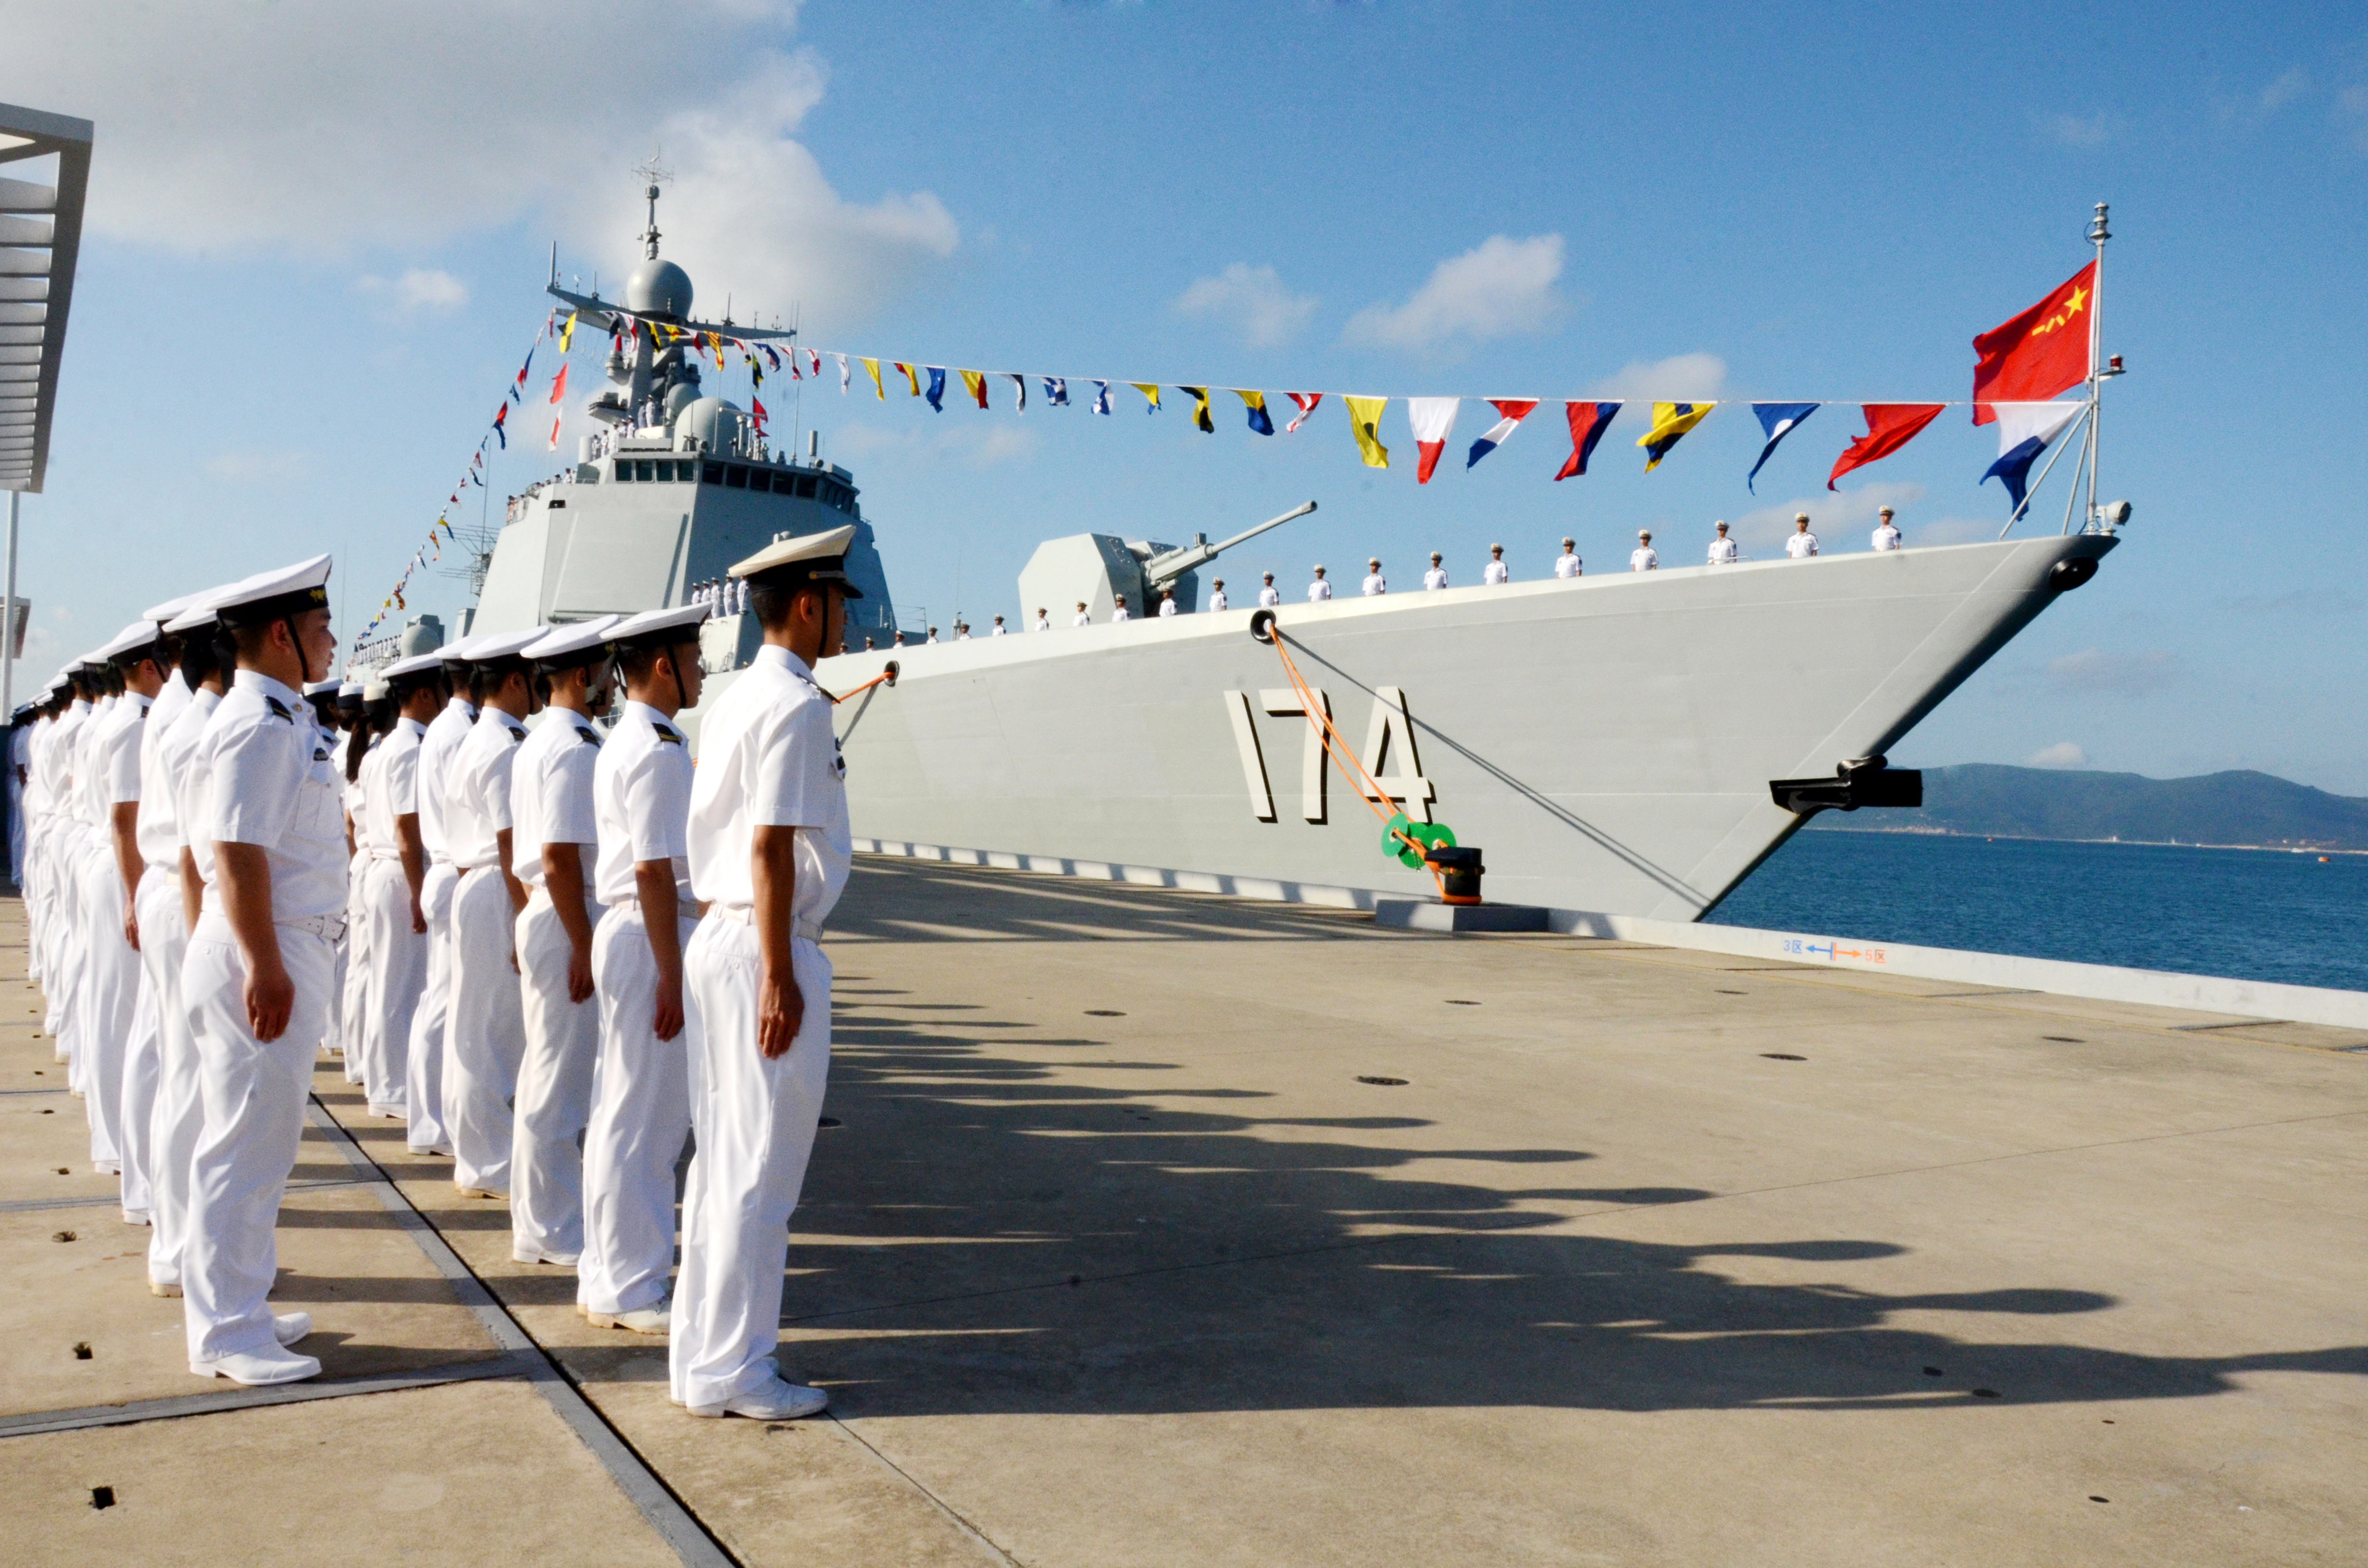 Chinese Navy officers attend a flag-presenting ceremony as the Hefei, the third Type 052D guided missile destroyer commissioned by the PLA Navy is delivered to the South Sea Fleet on Dec. 12, 2015, in Sanya, China's Hainan Island